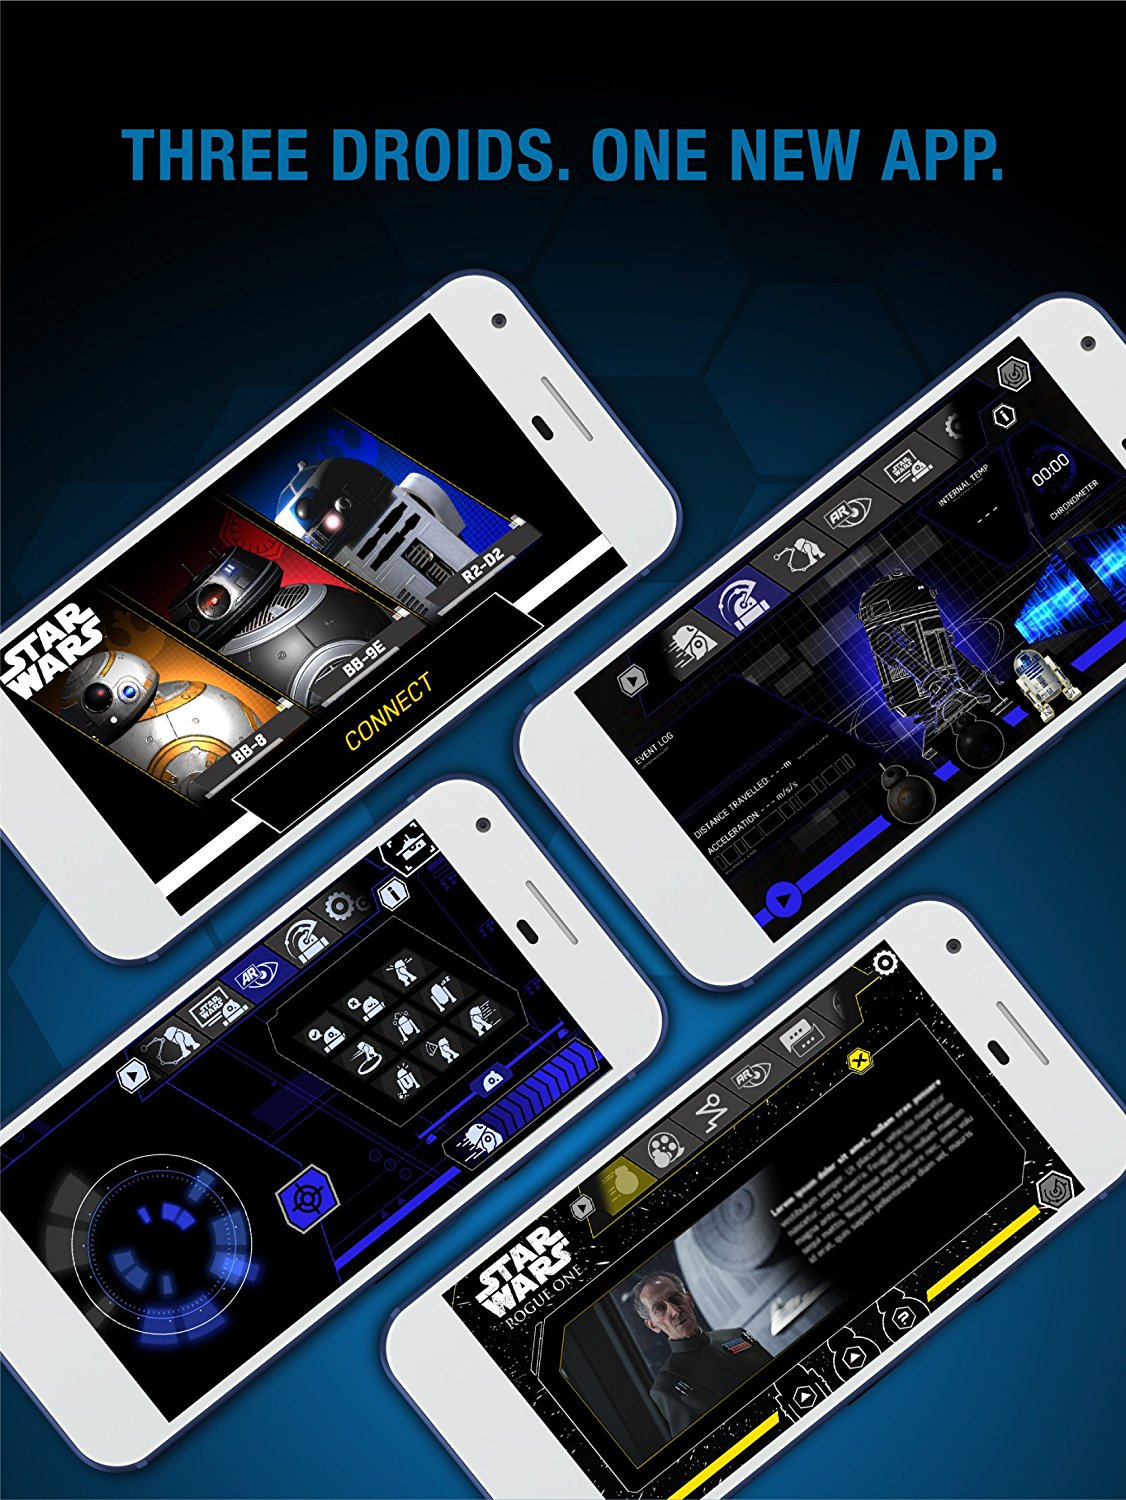 Application Sphero R2-D2 iOS android